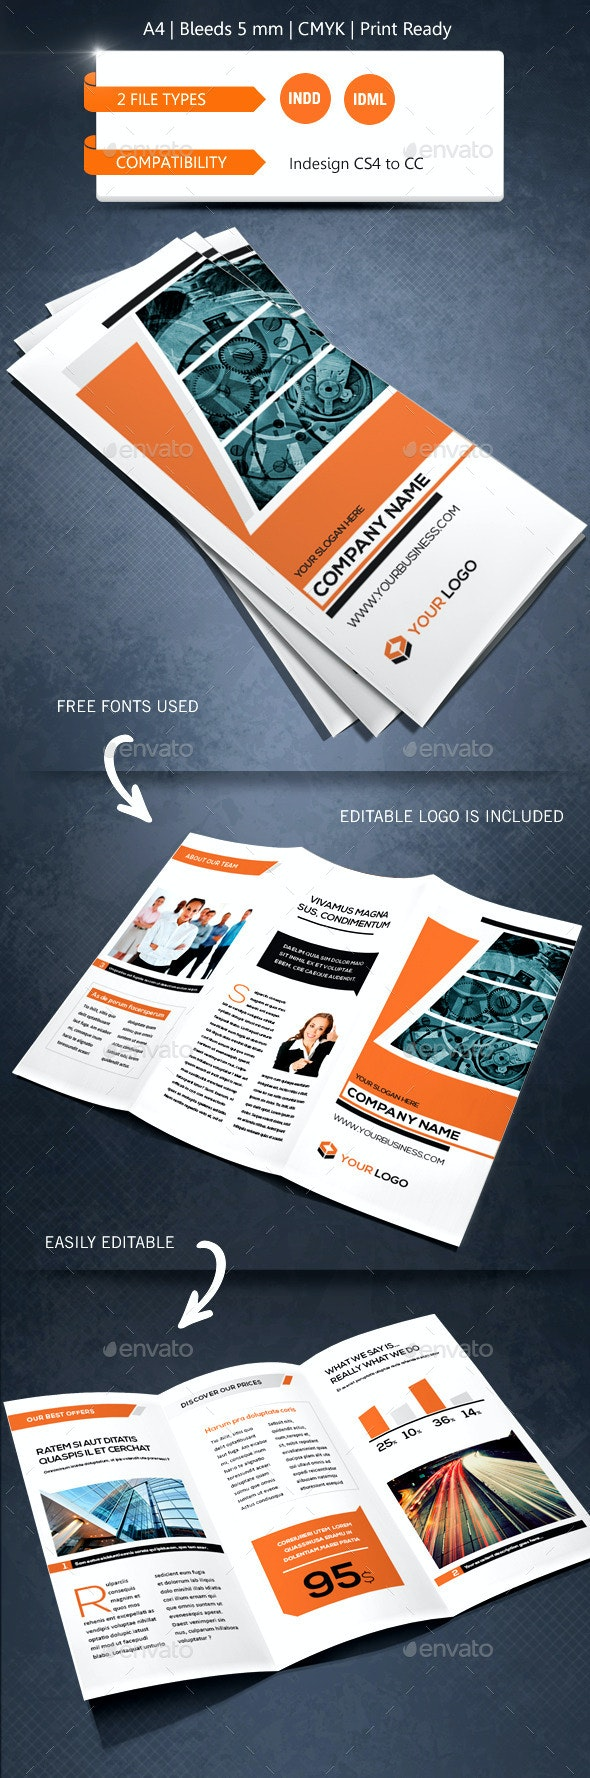 Creative & Corporate Trifold Brochure Template - Informational Brochures